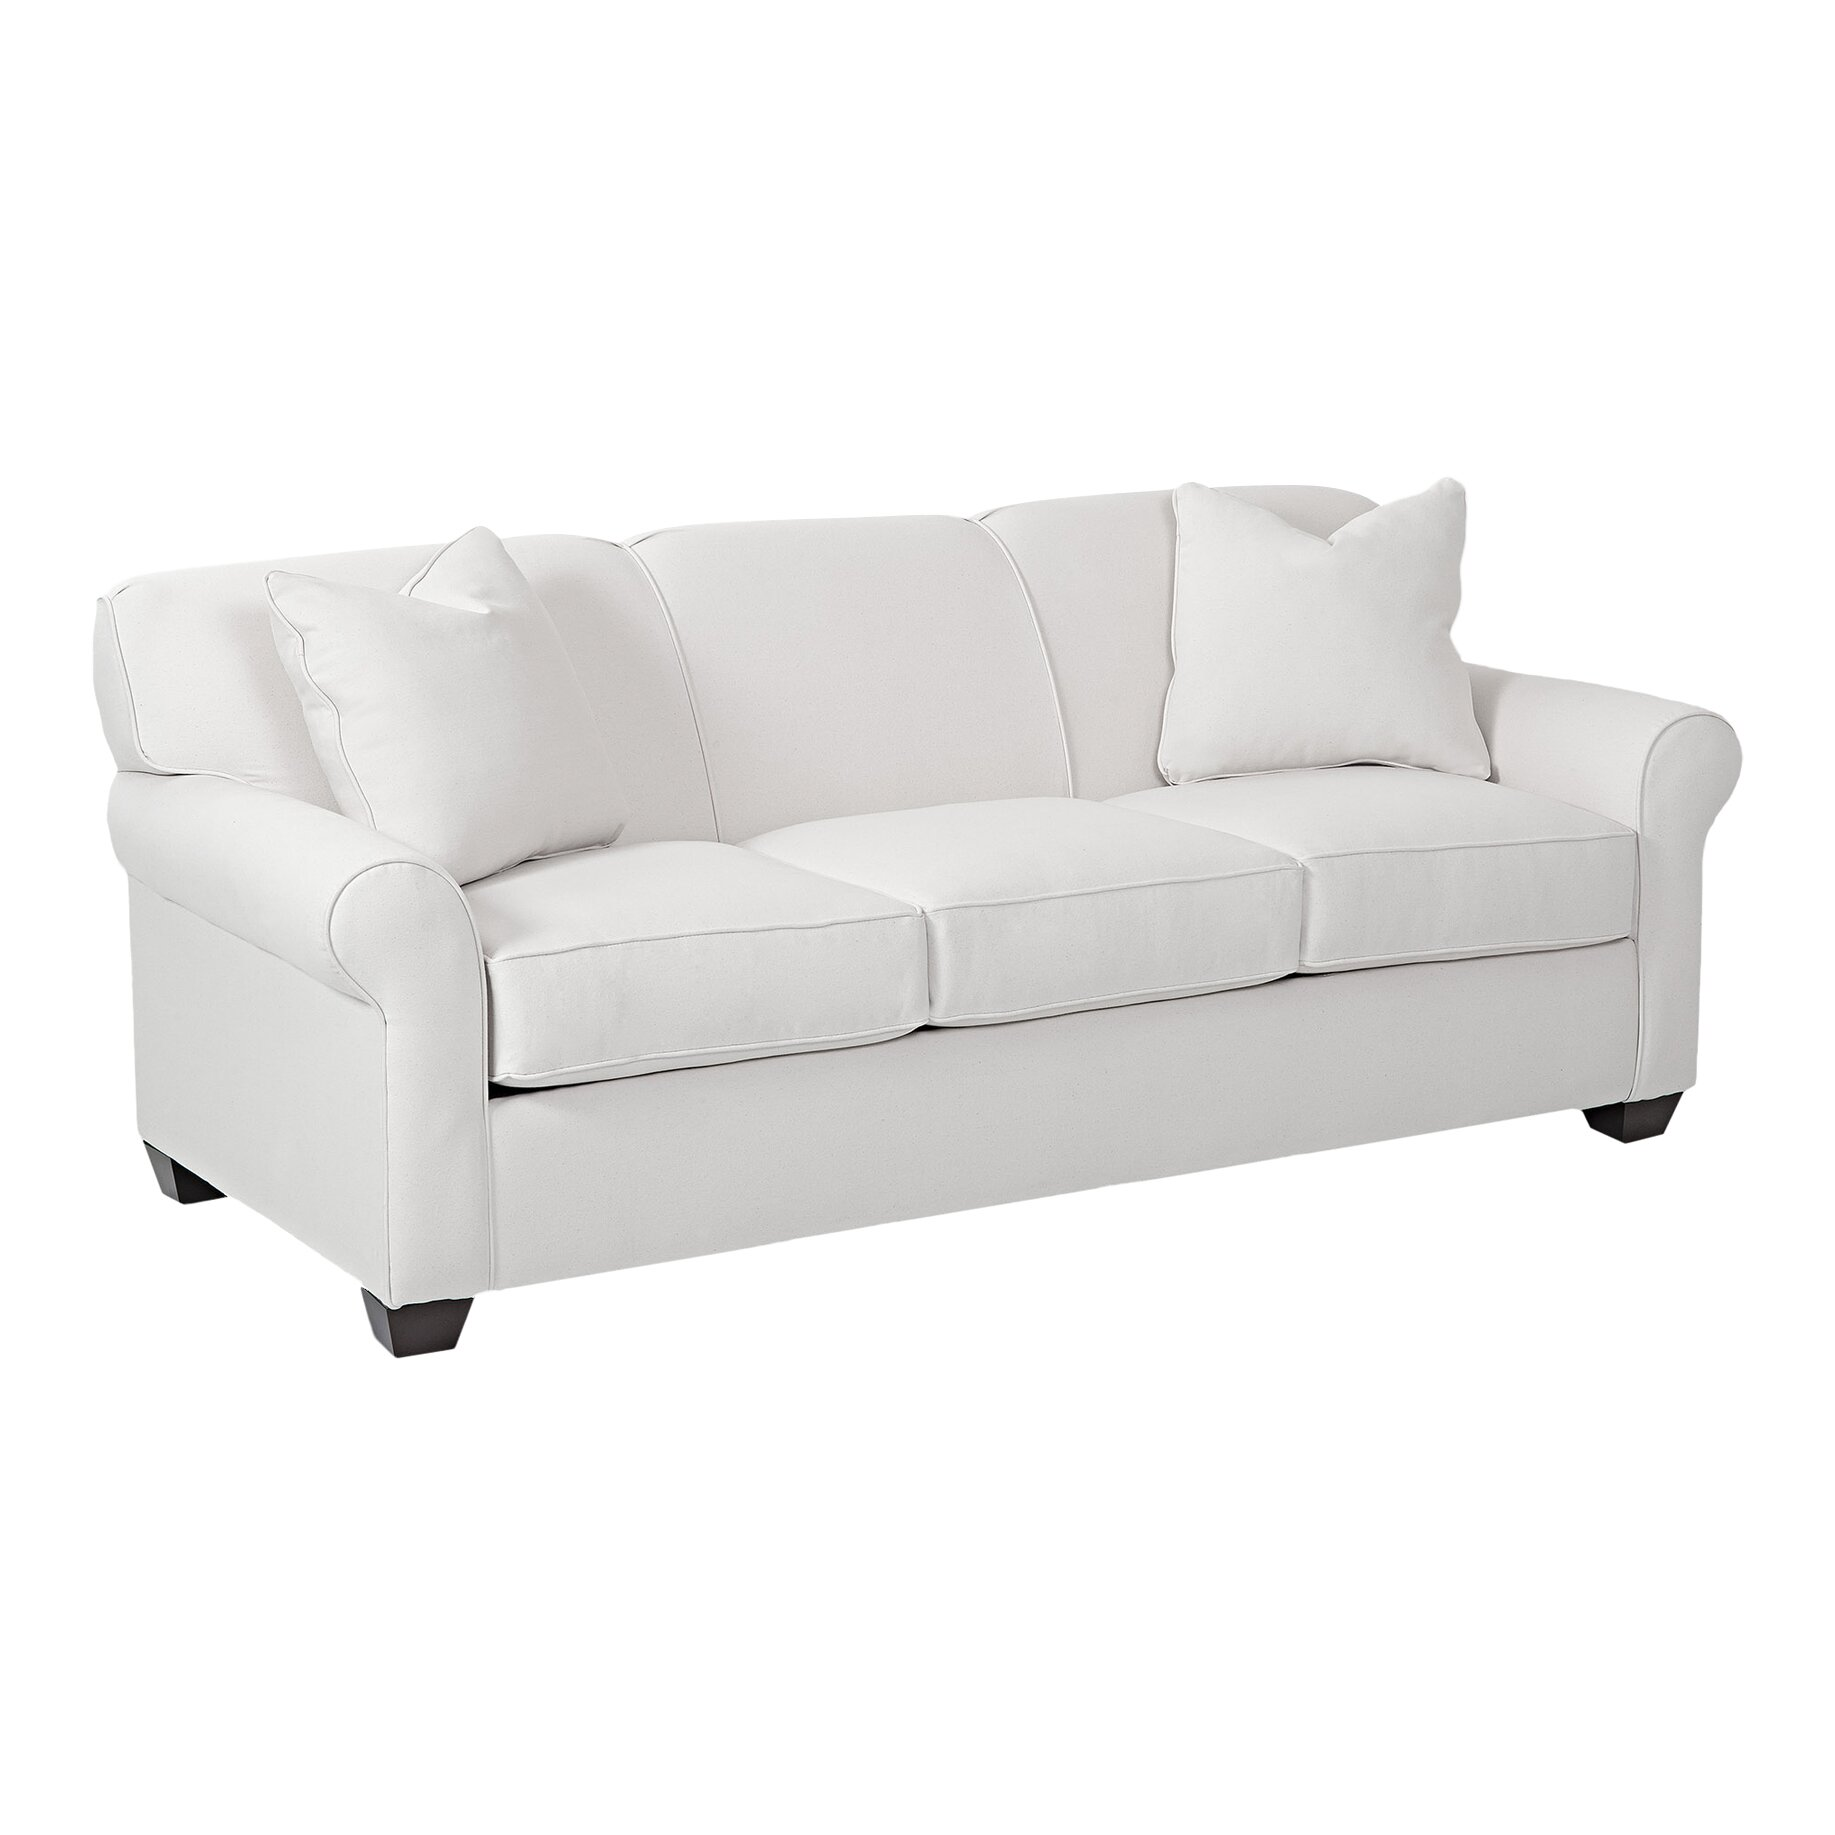 Wayfair Custom Upholstery Jennifer Sofa Reviews Wayfair